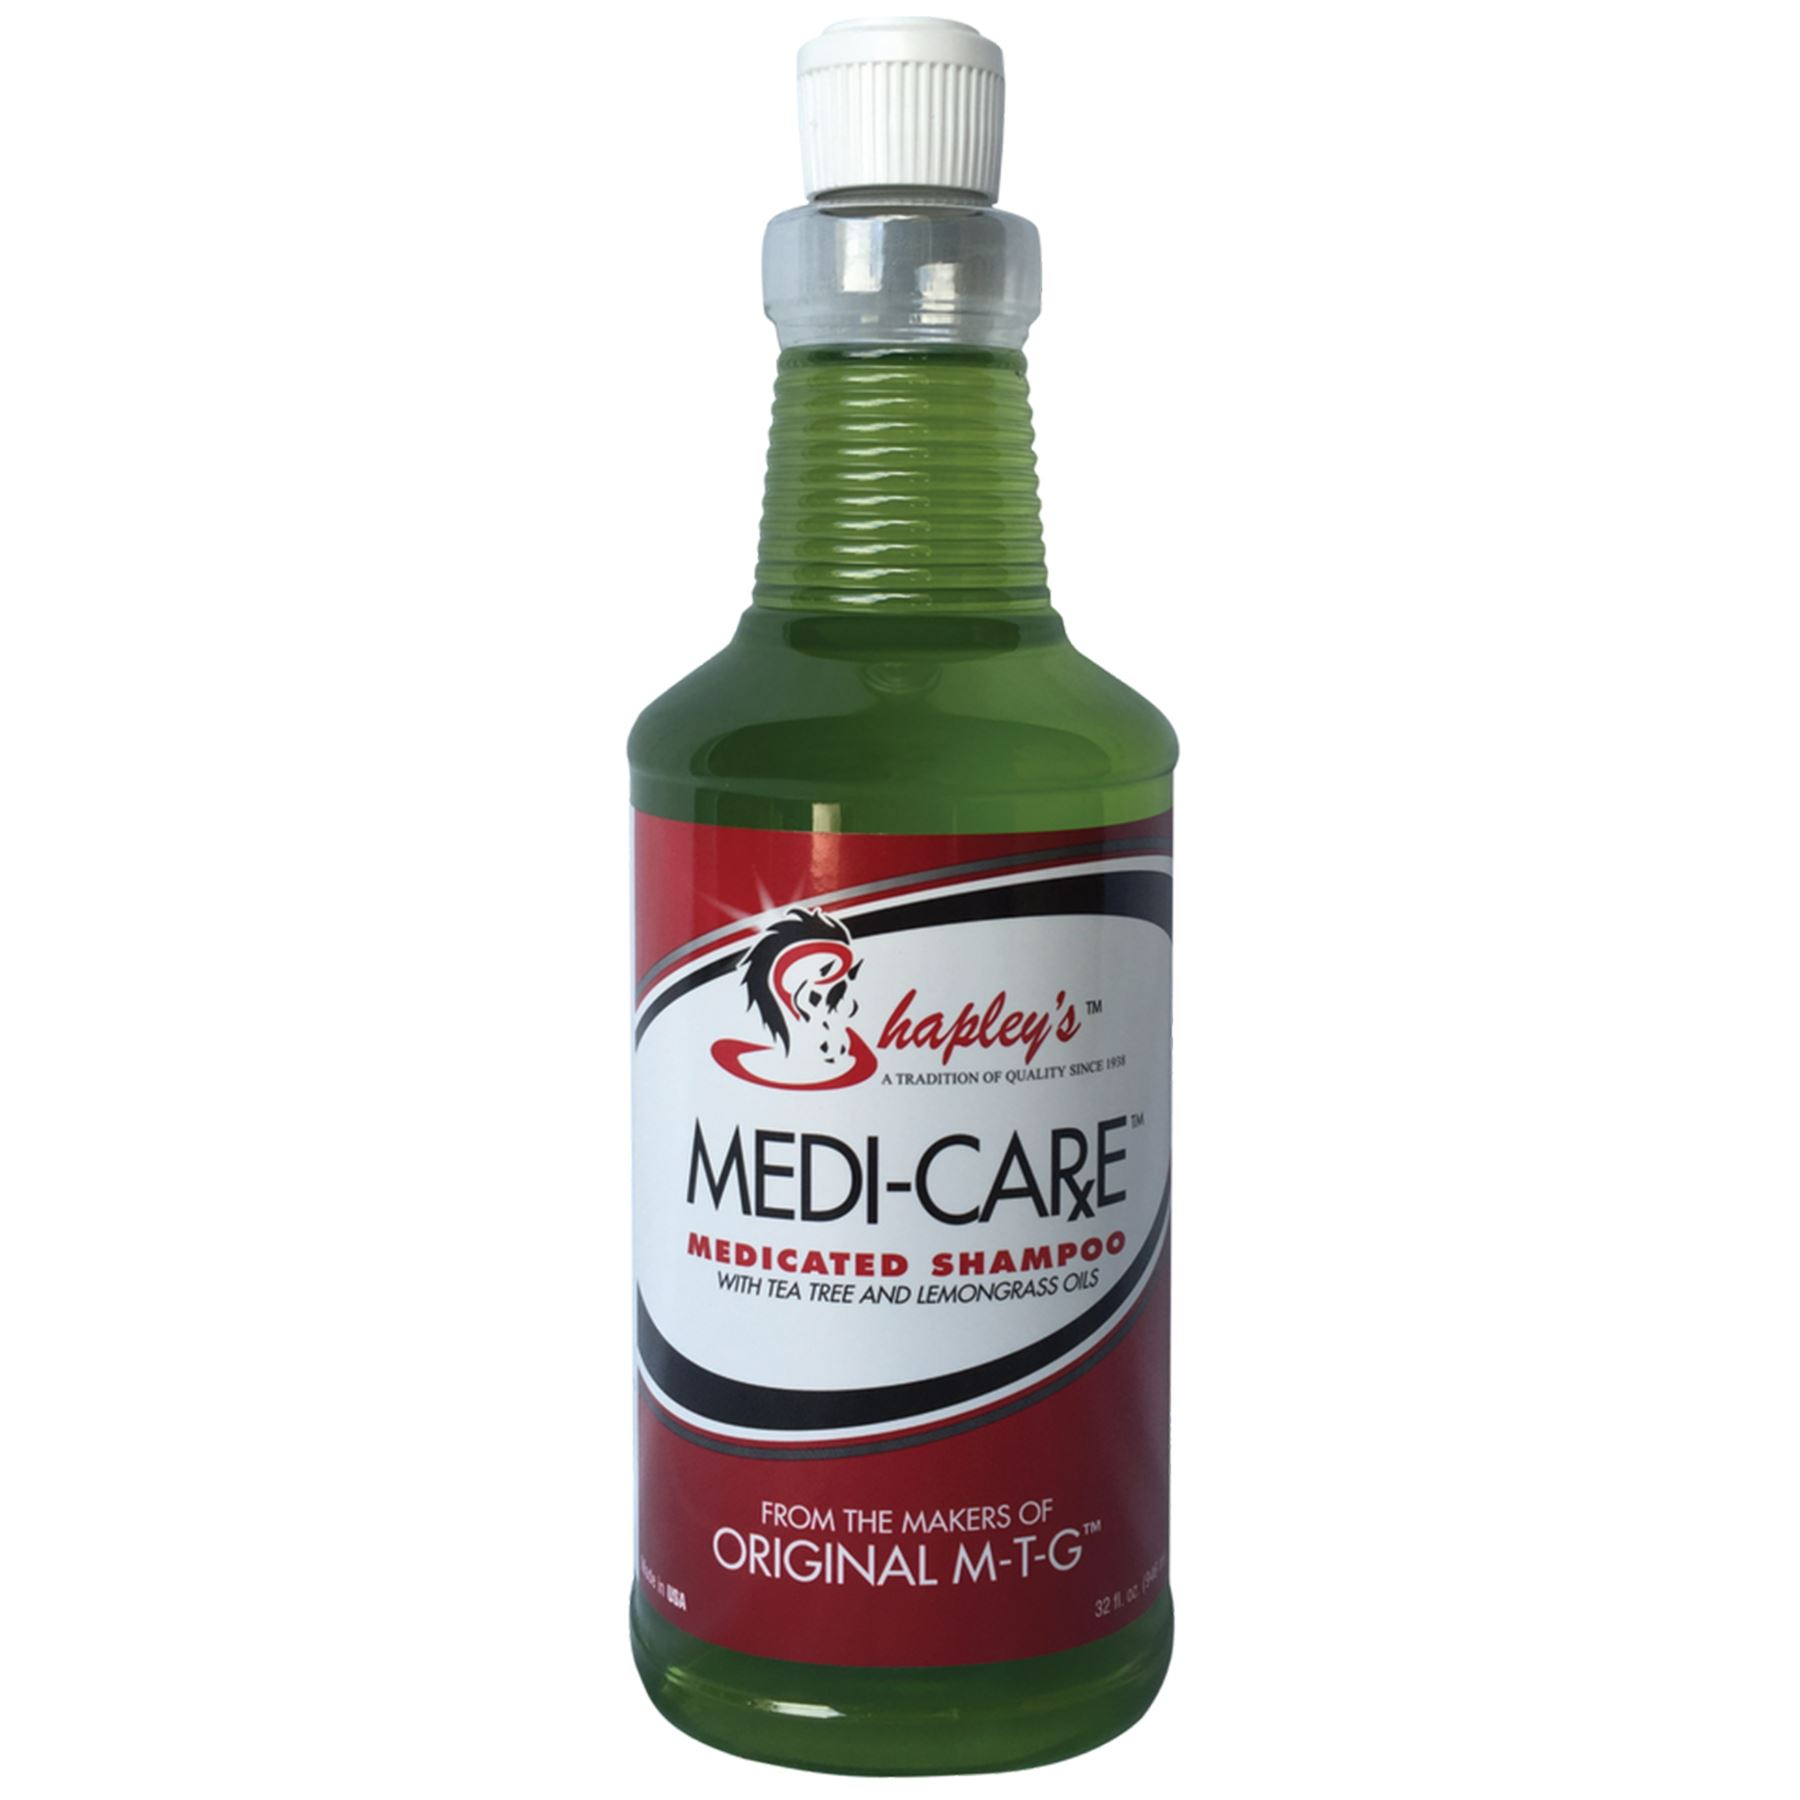 Shapley's™ Medi-Care™ Medicated Shampoo